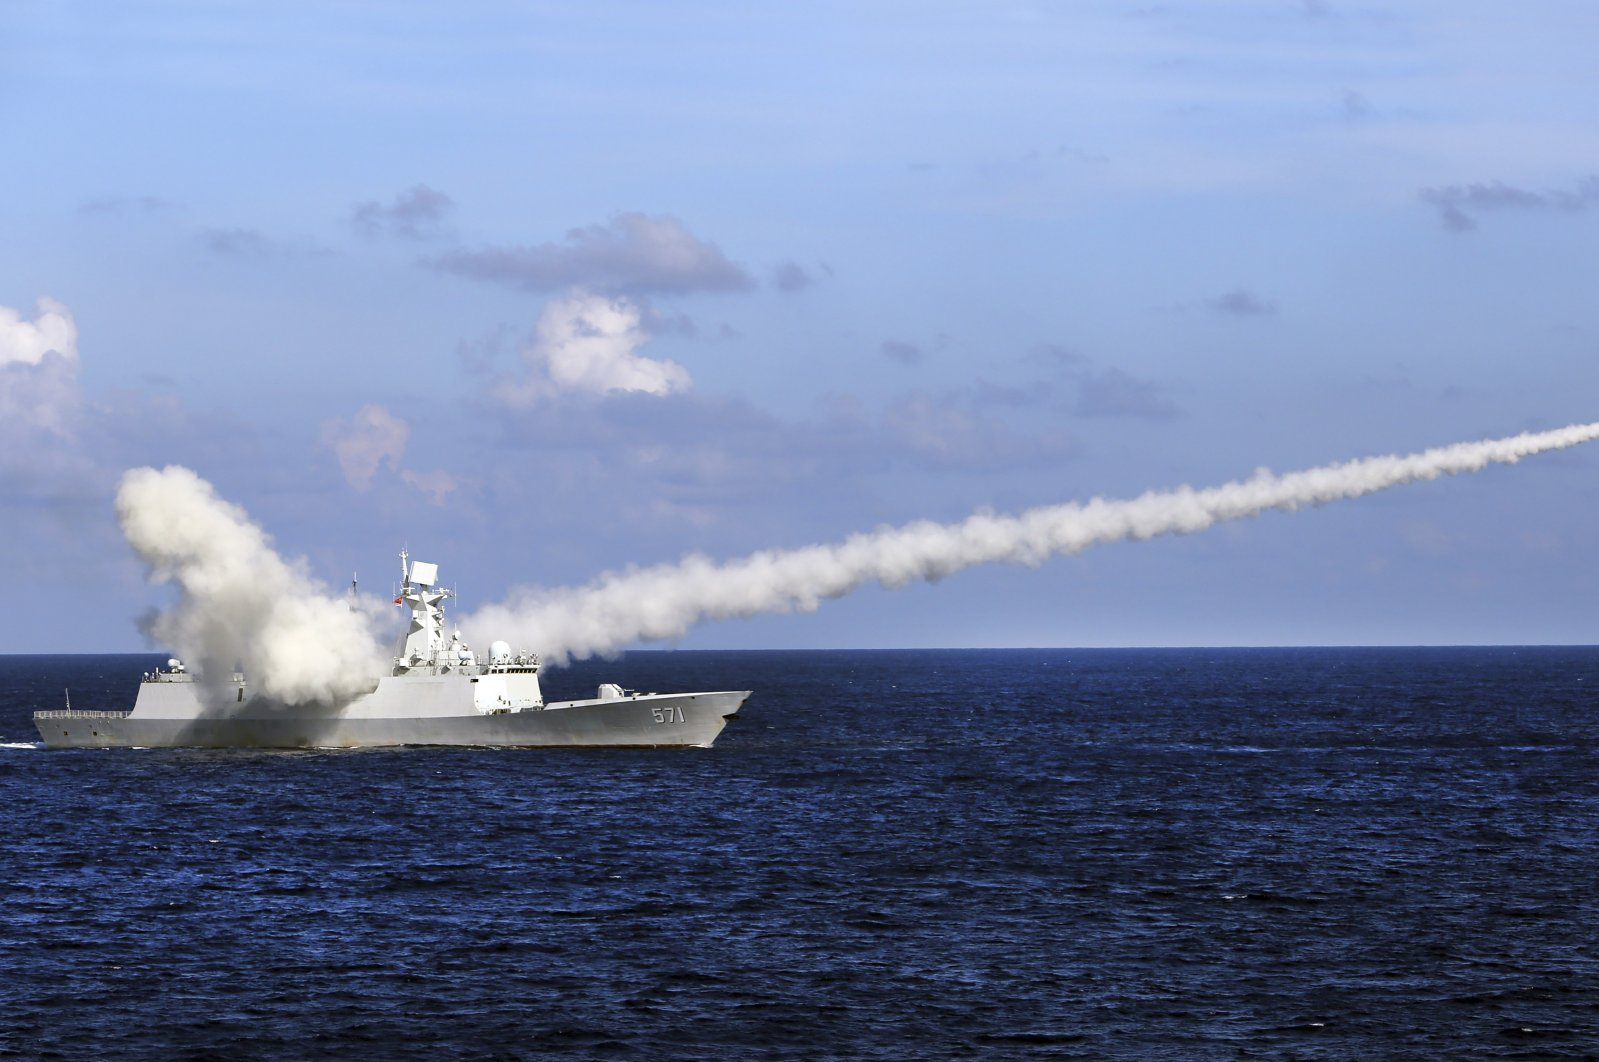 In this file photo, Chinese missile frigate Yuncheng launches an anti-ship missile during a military exercise in the waters near south China's Hainan Island and Paracel Islands, July 8, 2016. (AP Photo)